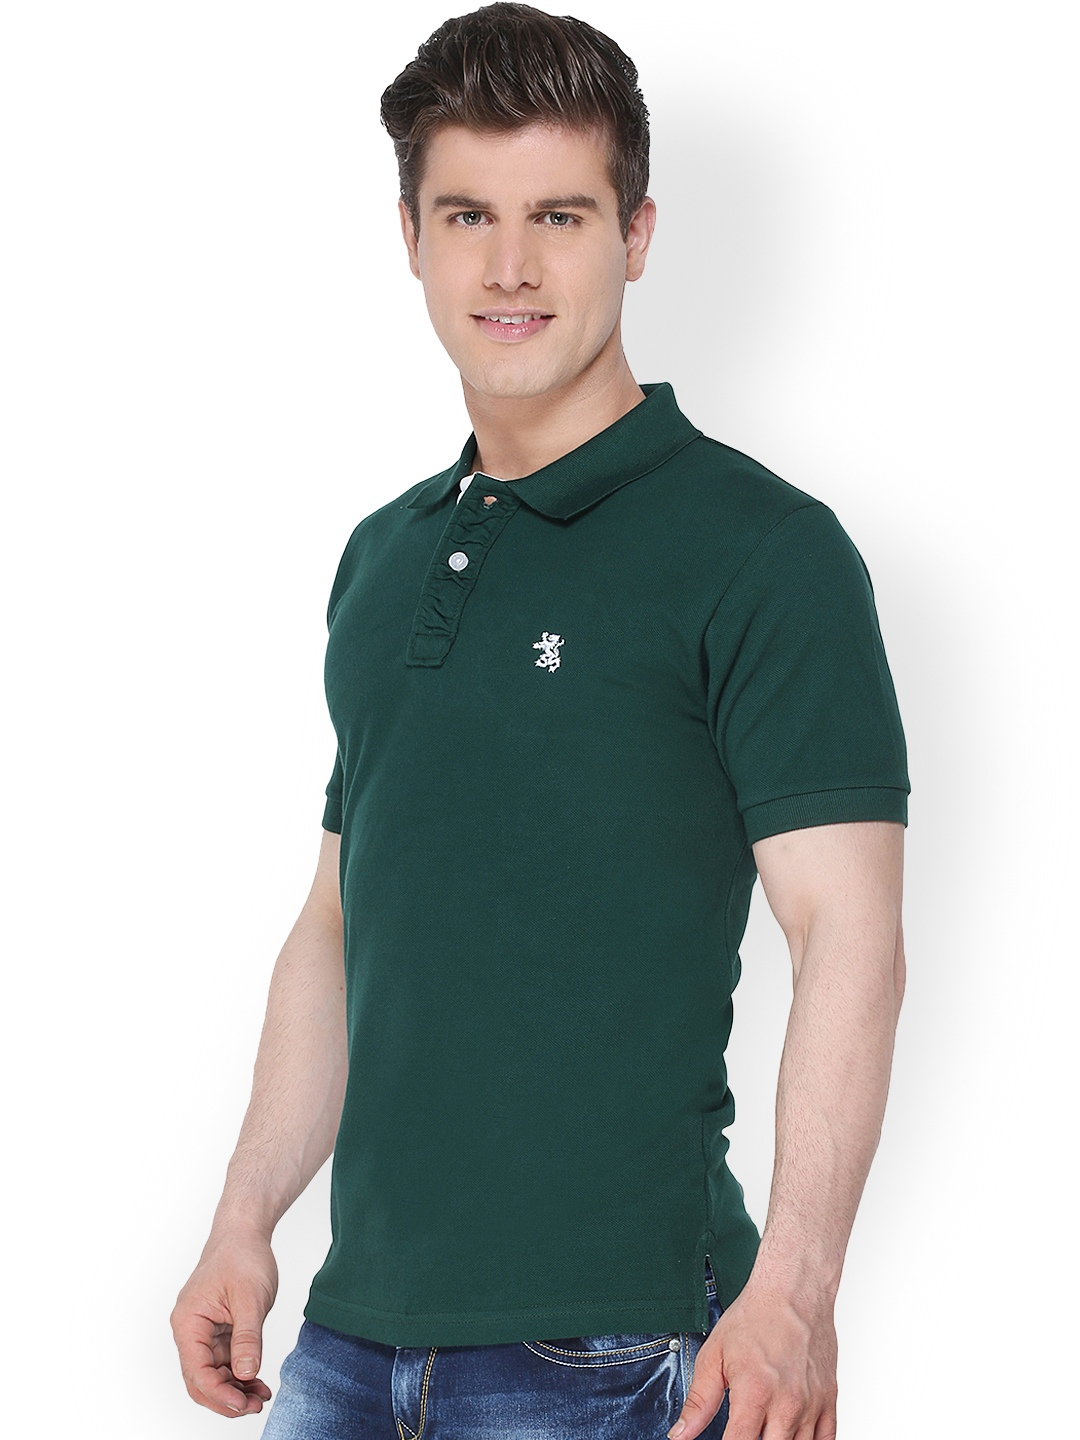 Our independent experts have researched everything related to Polo Shirts newuz.tk Saving Today · Special Offers · Browse All the News Now · Fantastic Seasonal Deals.